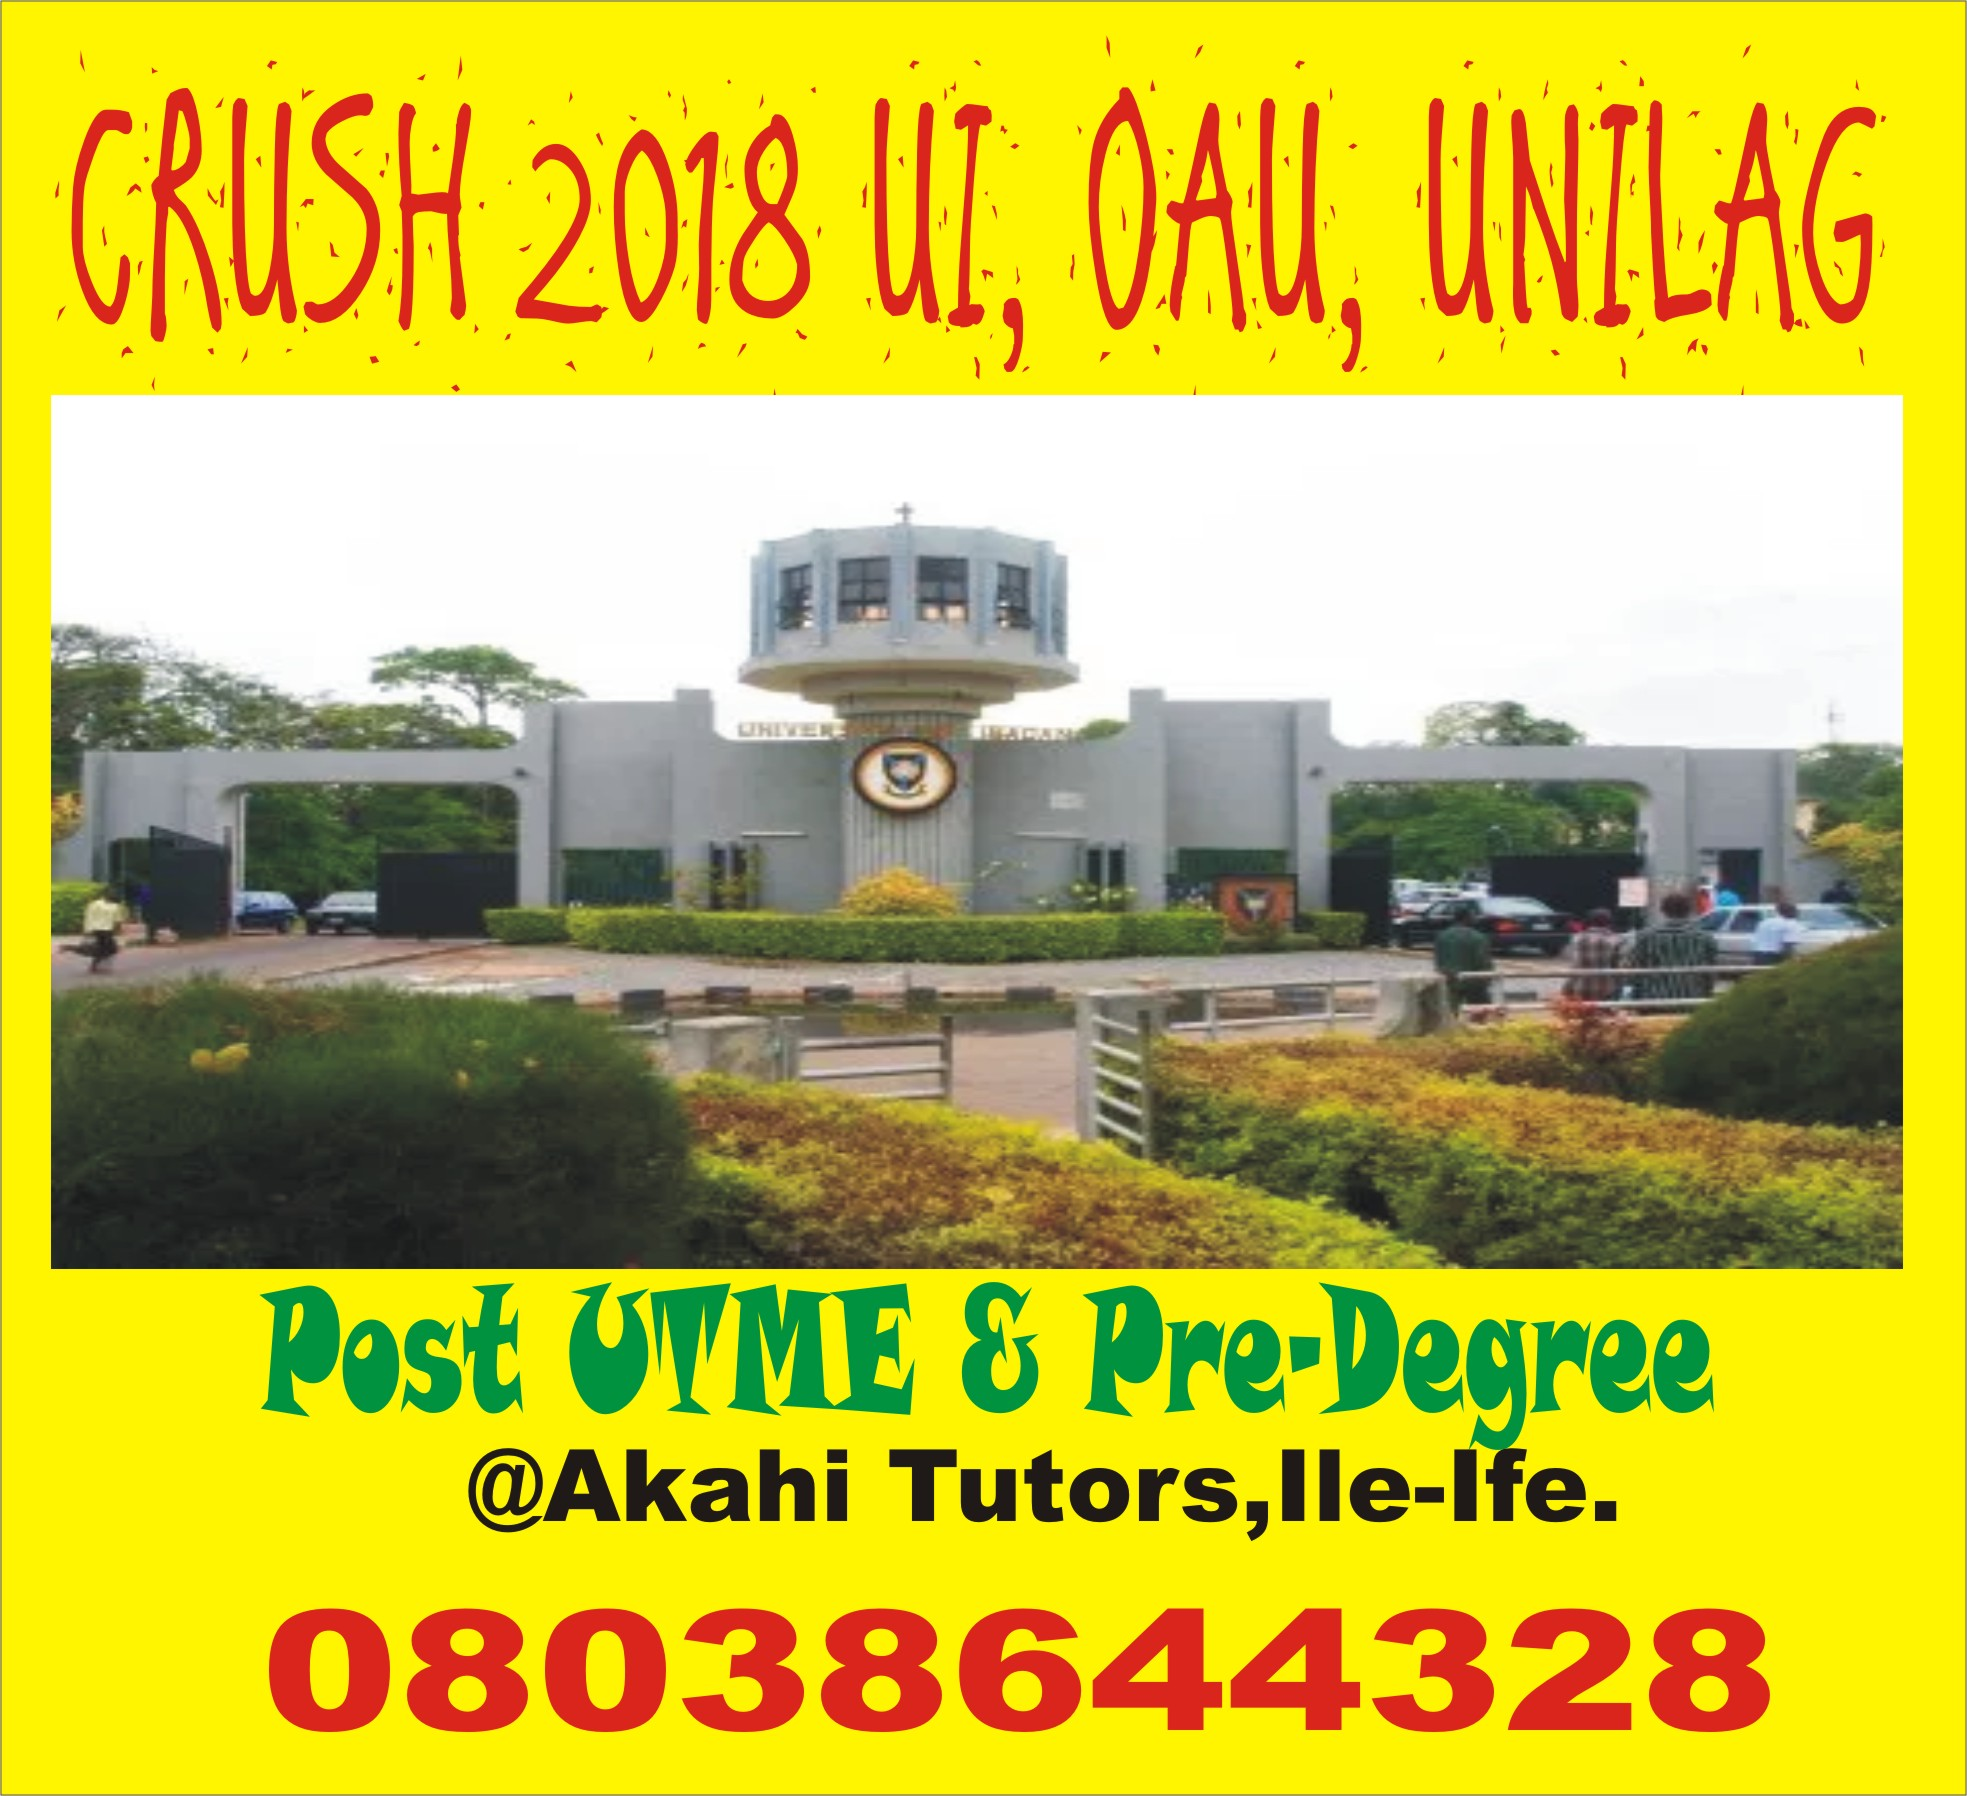 Blast Post UTME At Akahi Tutors, Ile-Ife